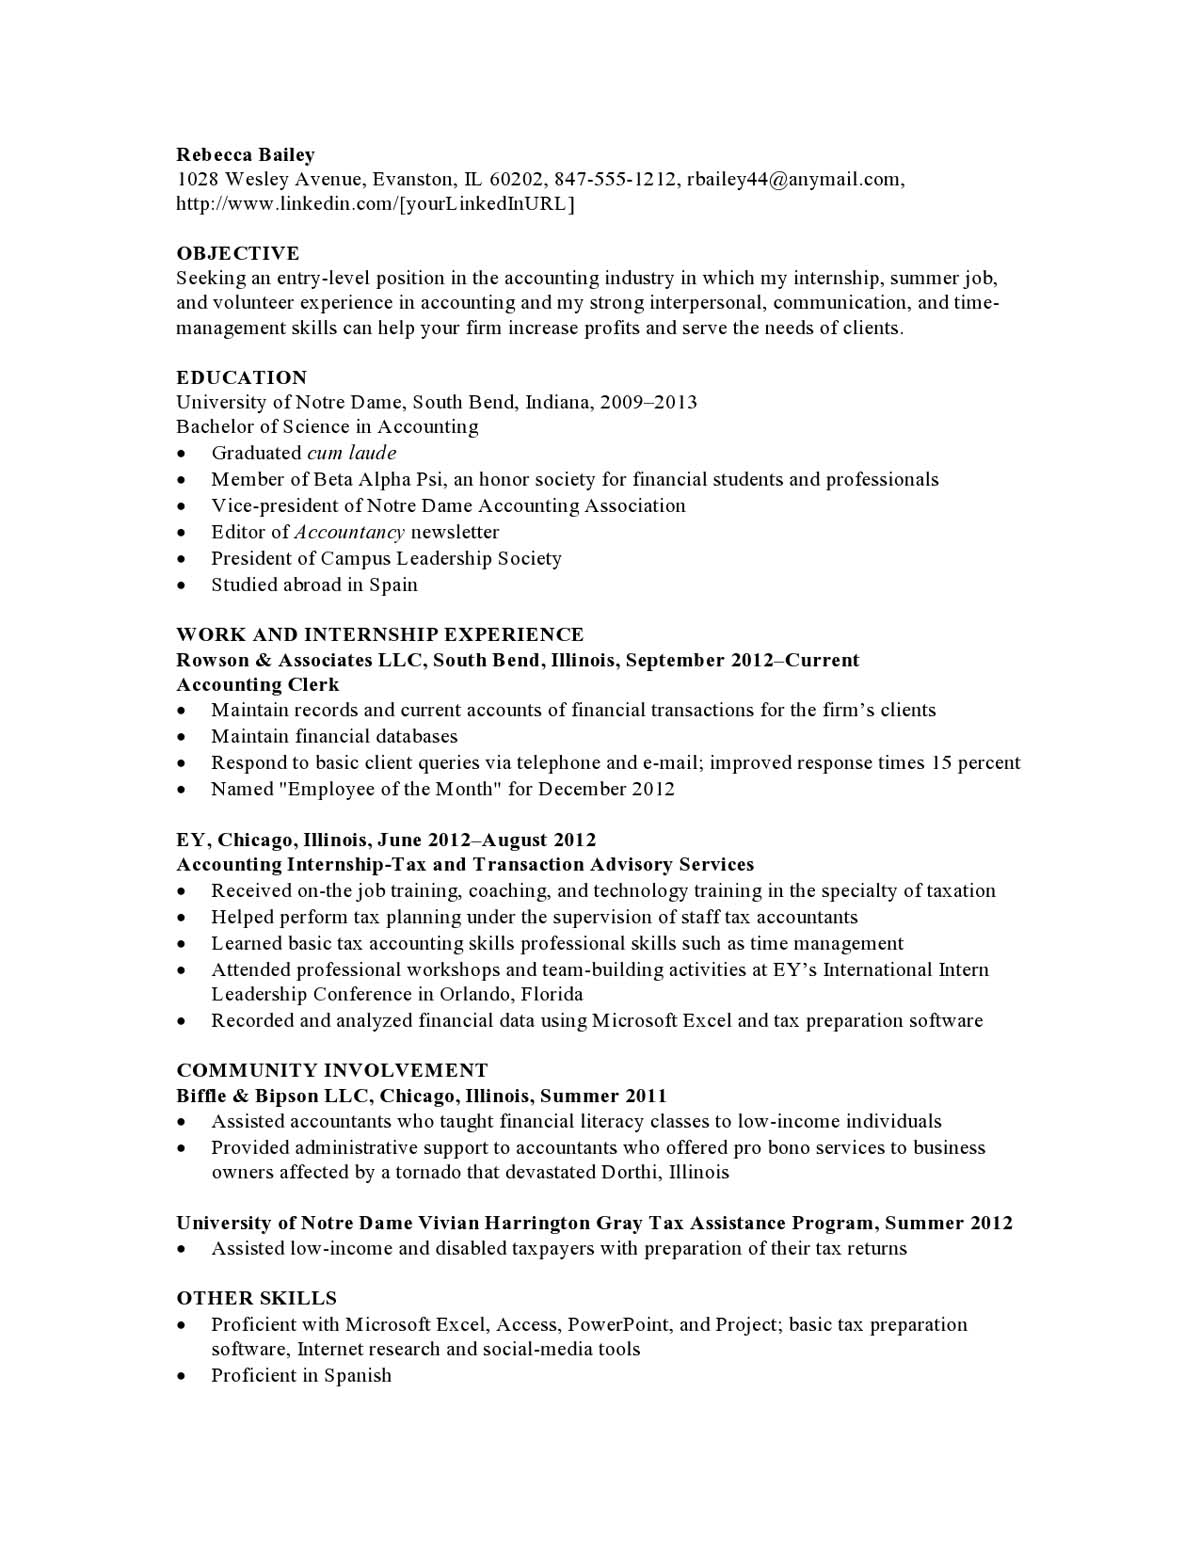 resume samples templates examples vault experience ideas for crescoact19 sample federal Resume Experience Ideas For Resume